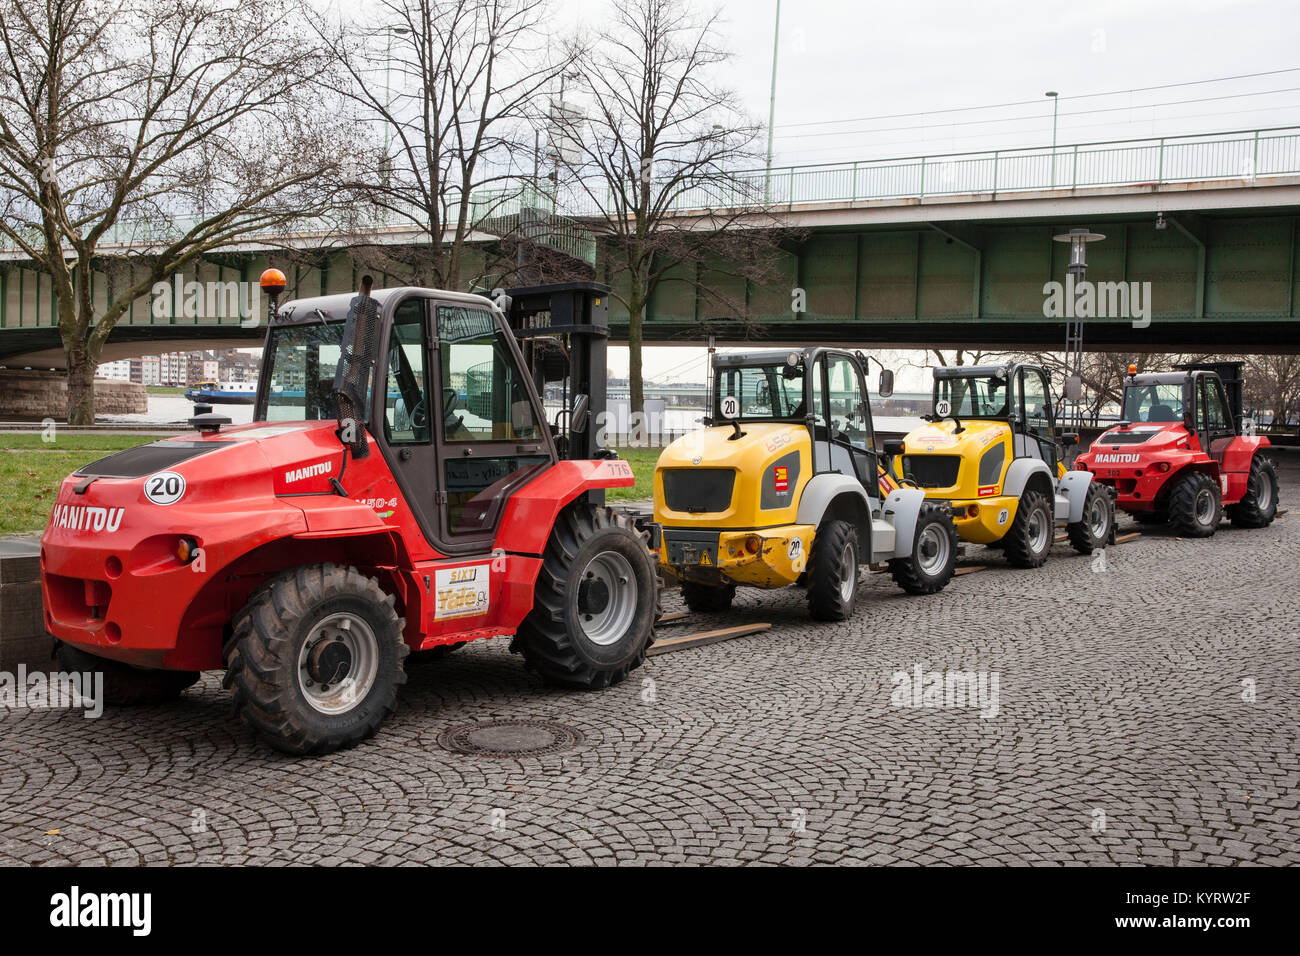 Europe, Germany, North Rhine-Westphalia, Cologne, forklifts on the banks of the river Rhine, Deutzer bridge.  Europa, - Stock Image